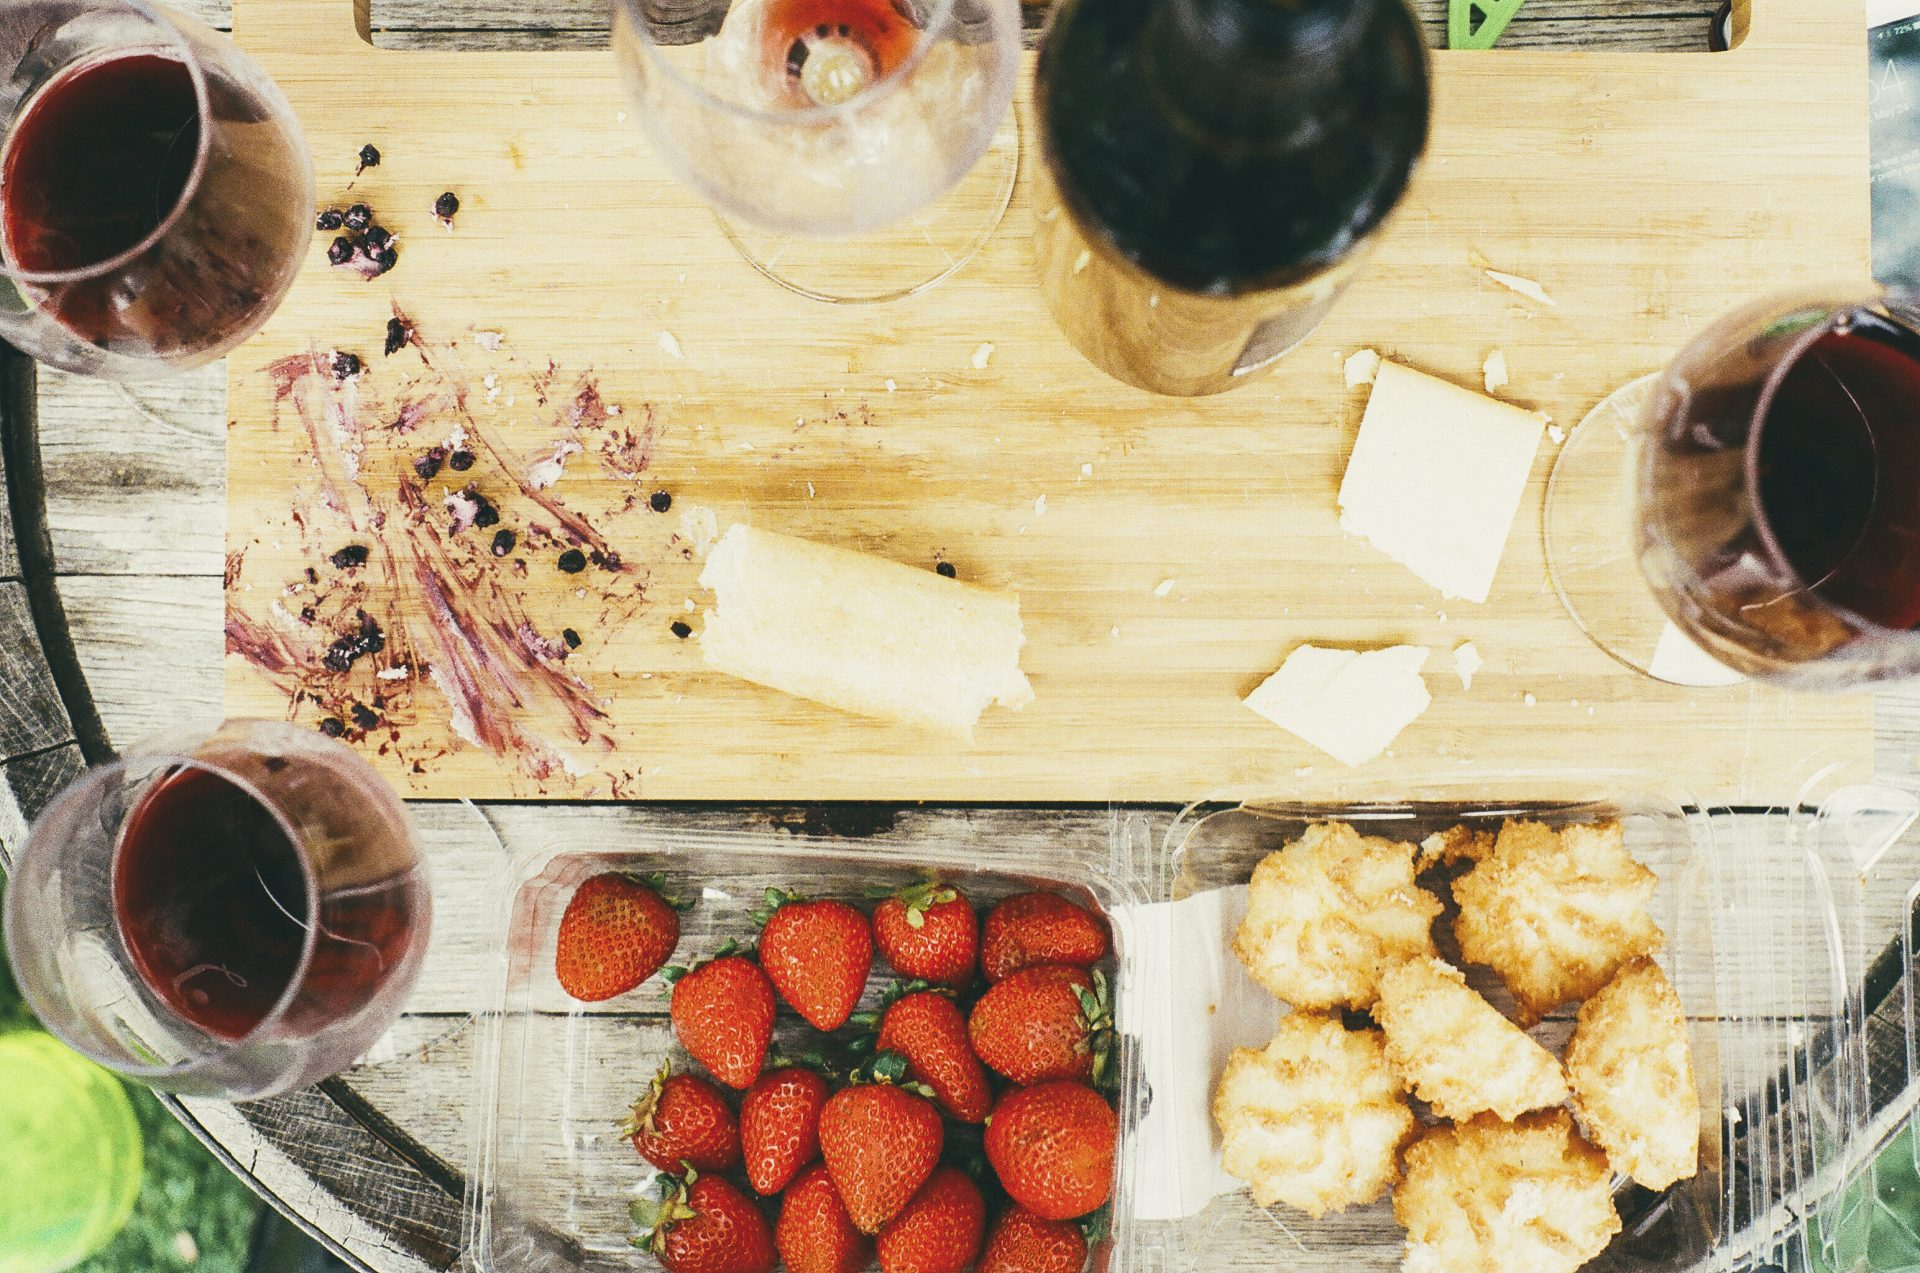 Wine, food, kitchen cutting board